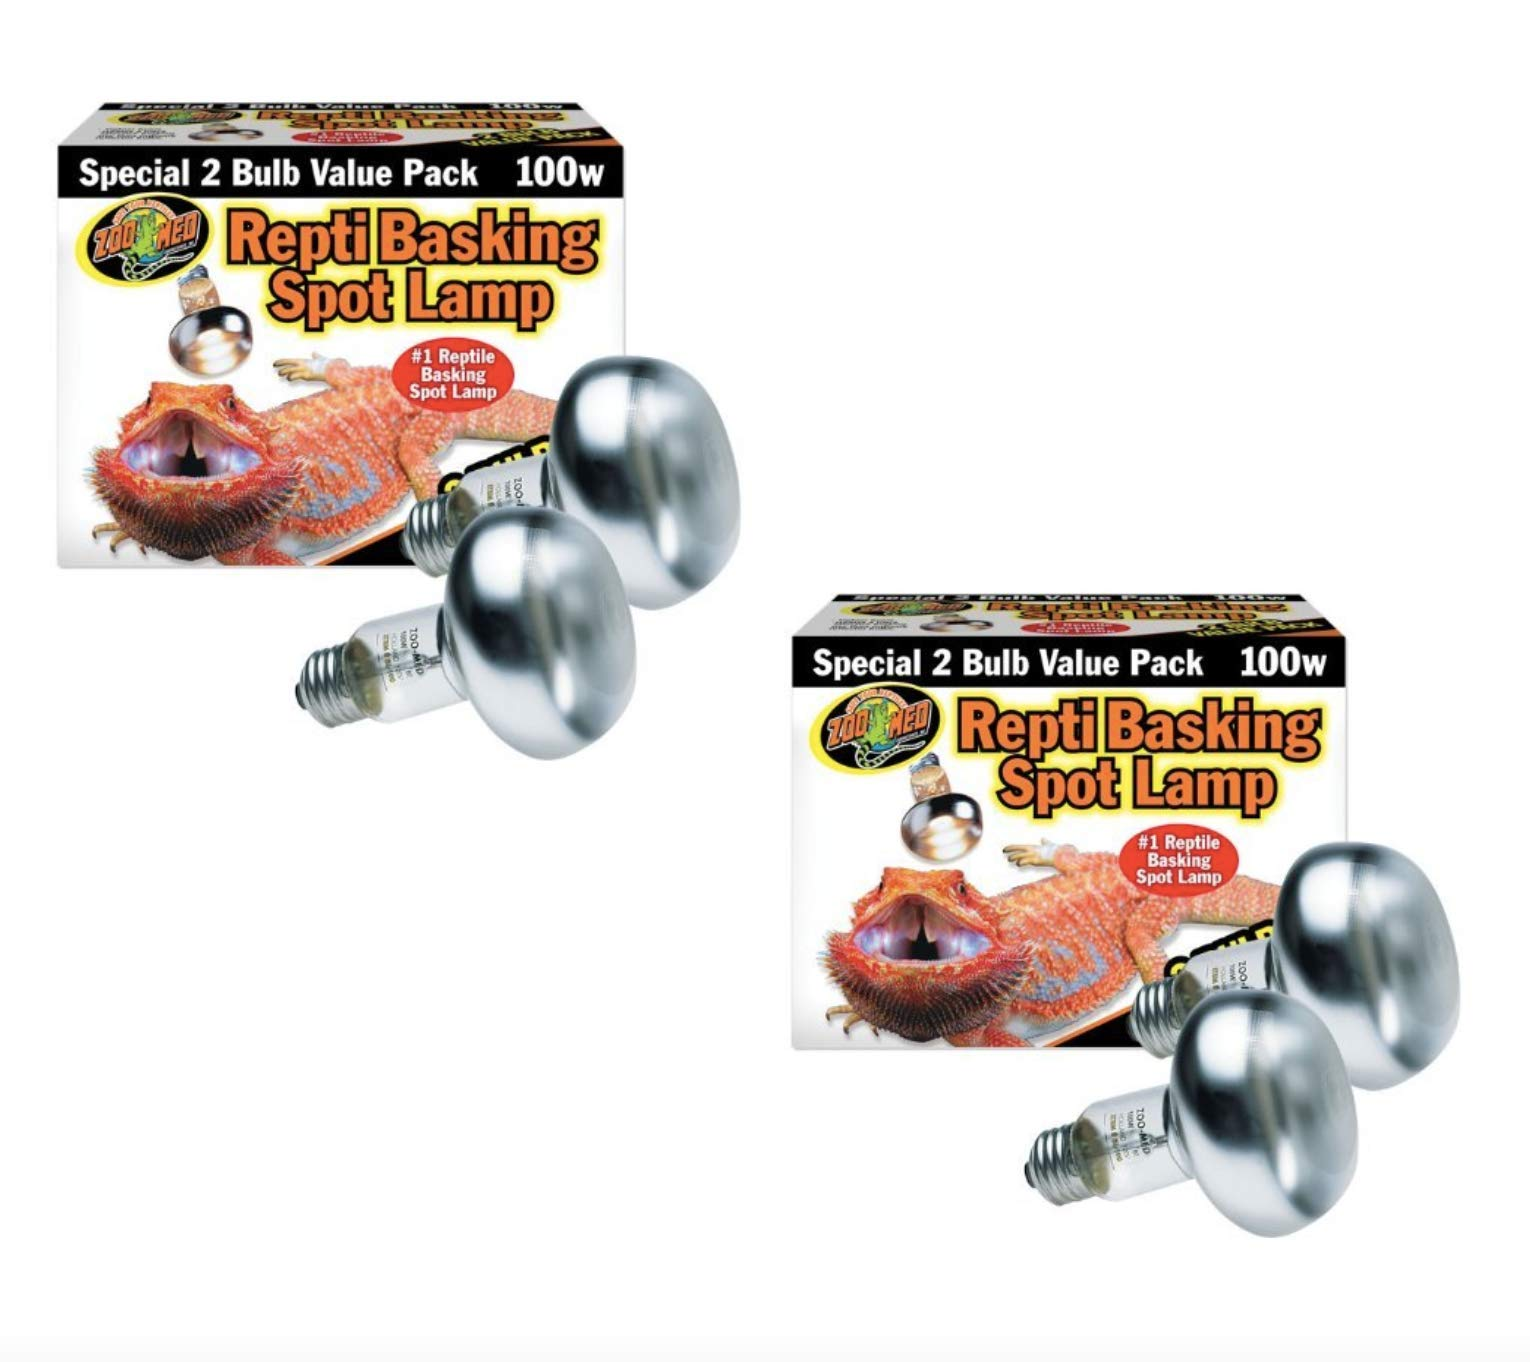 Zoo Med Repti Basking Spot Bulb 100w - 4 Bulbs Total (2 Pack with 2 Bulbs per Pack) by Zoo Med Labaratories